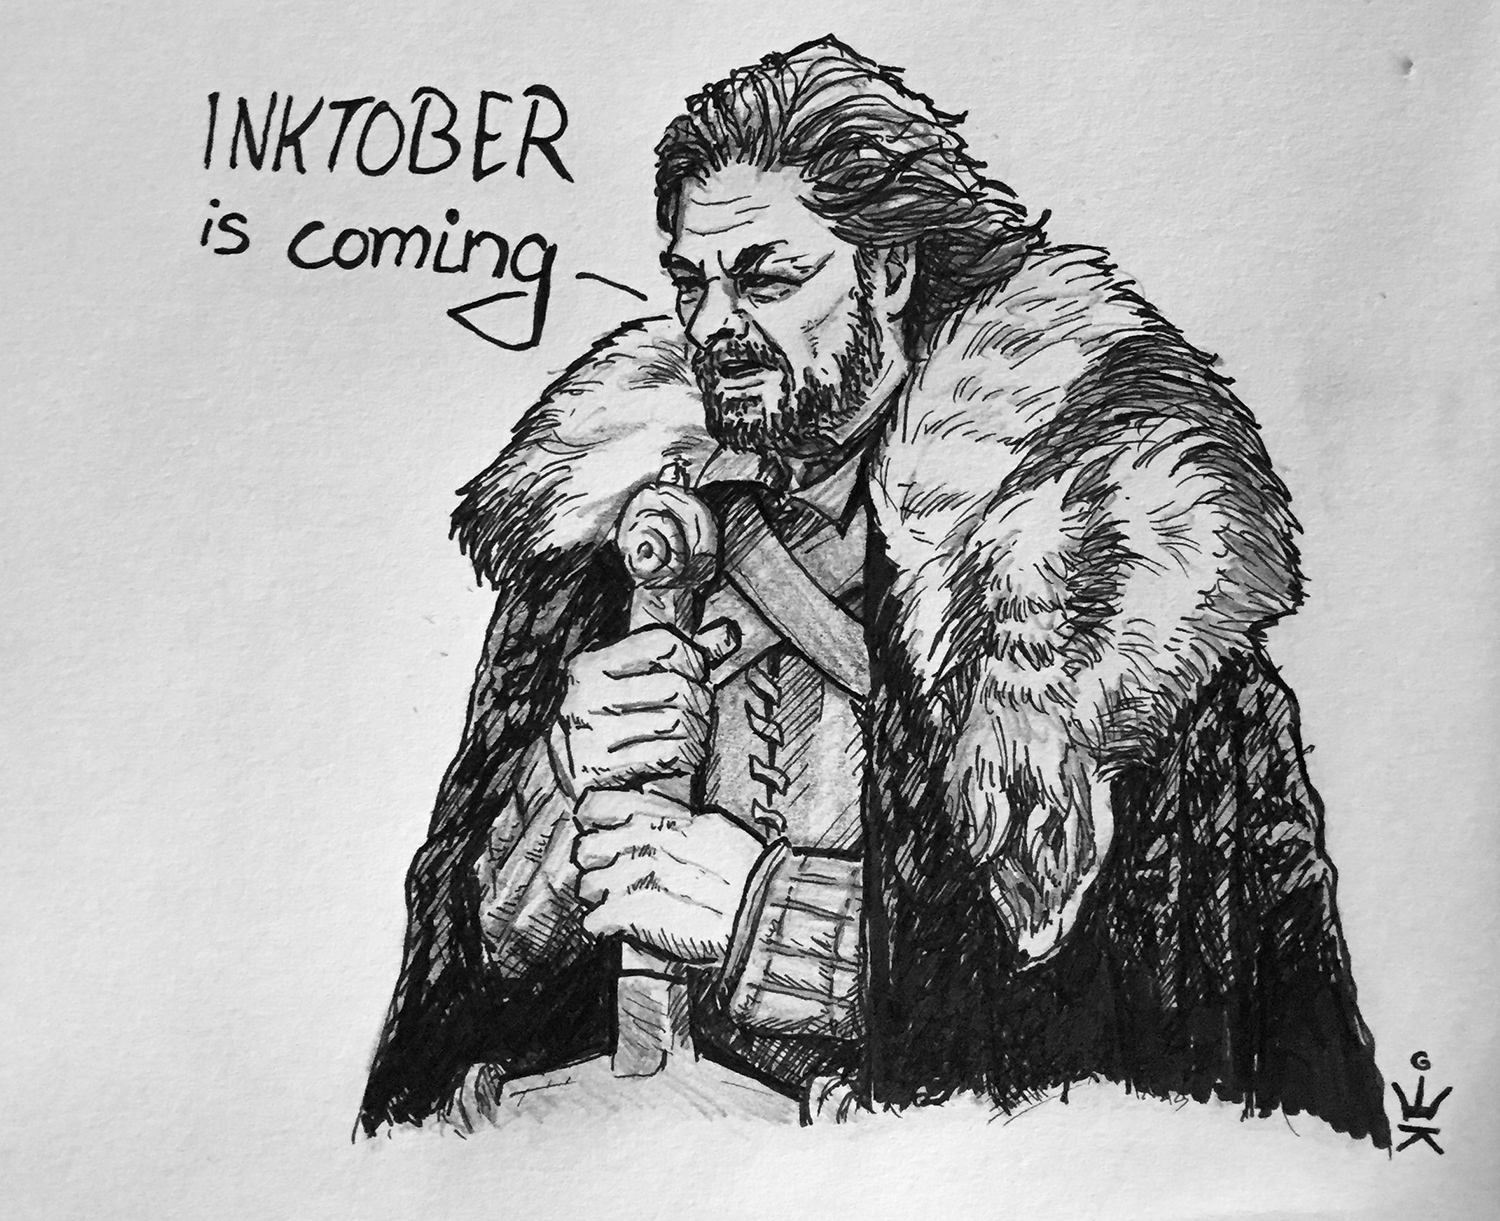 Ned Stark reminds you: Inktober is coming (c) Esther Wagner